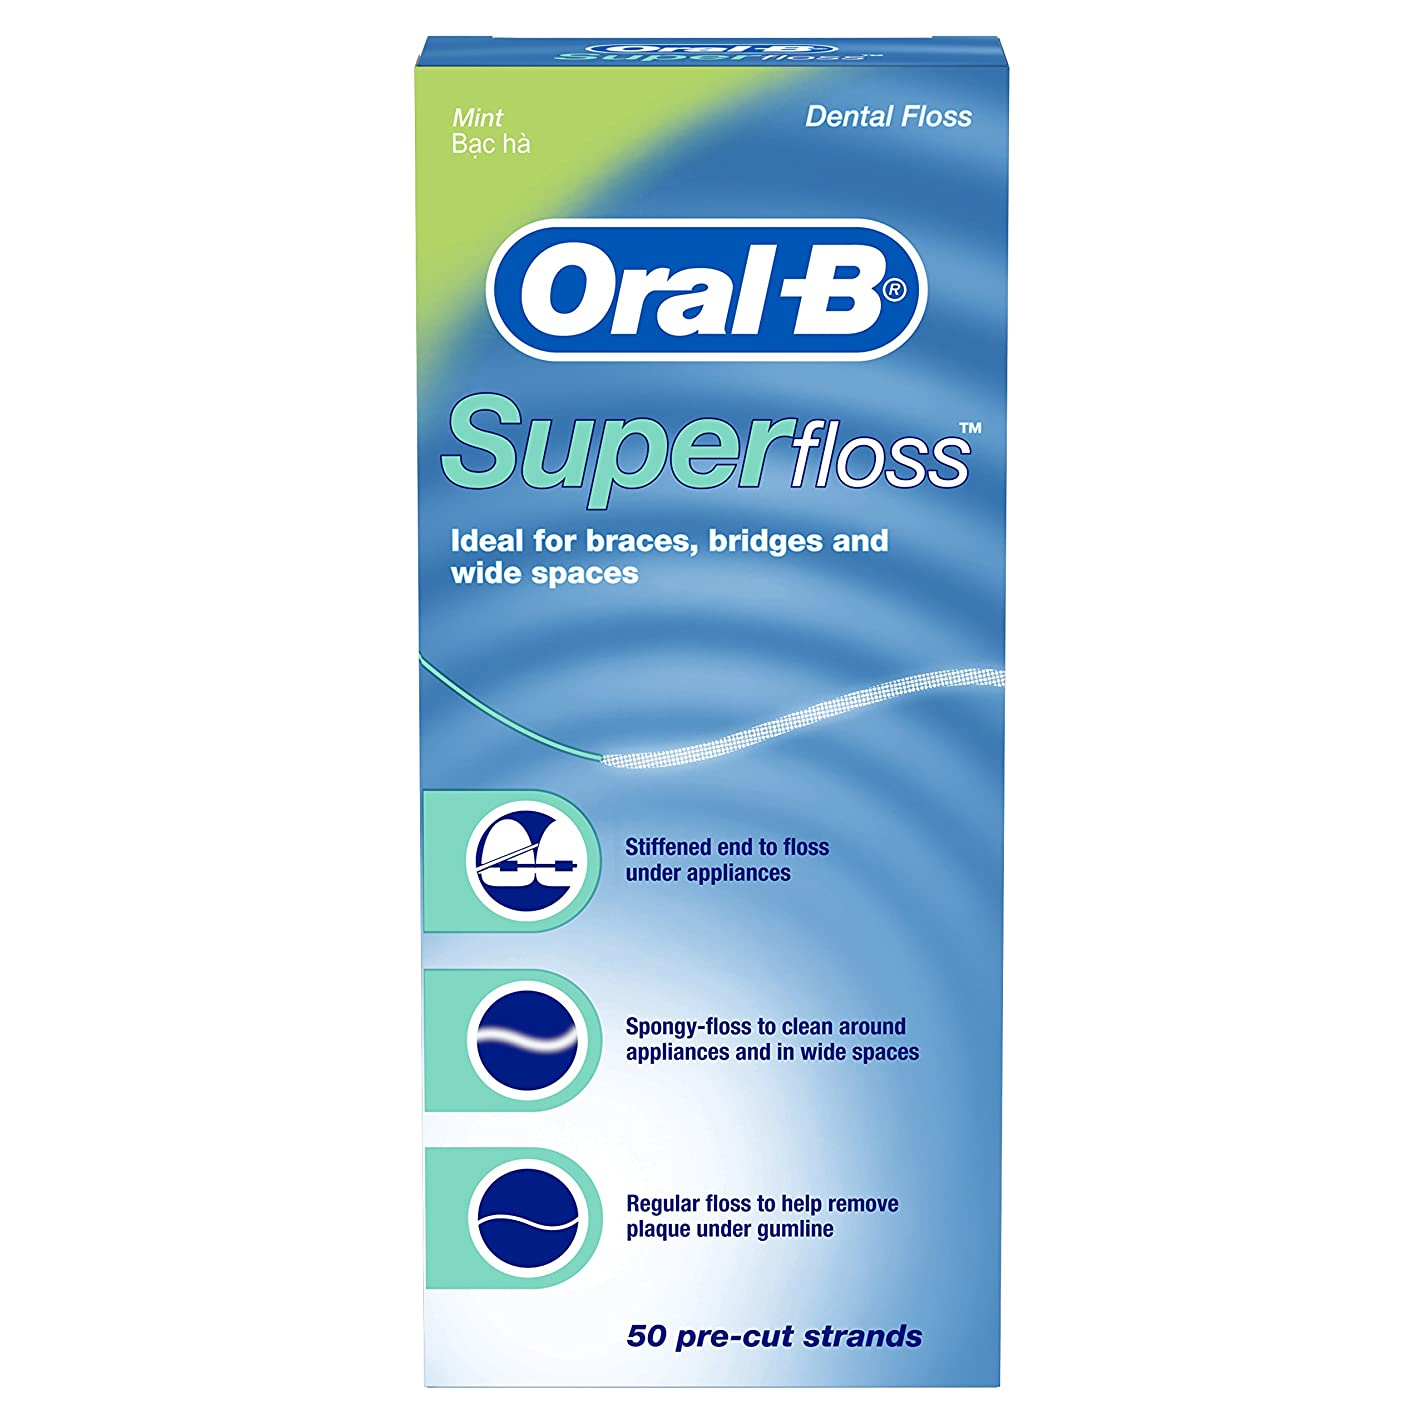 Oral-B Super Floss Dental Floss Mint Strips 50-Count (並行輸入品)